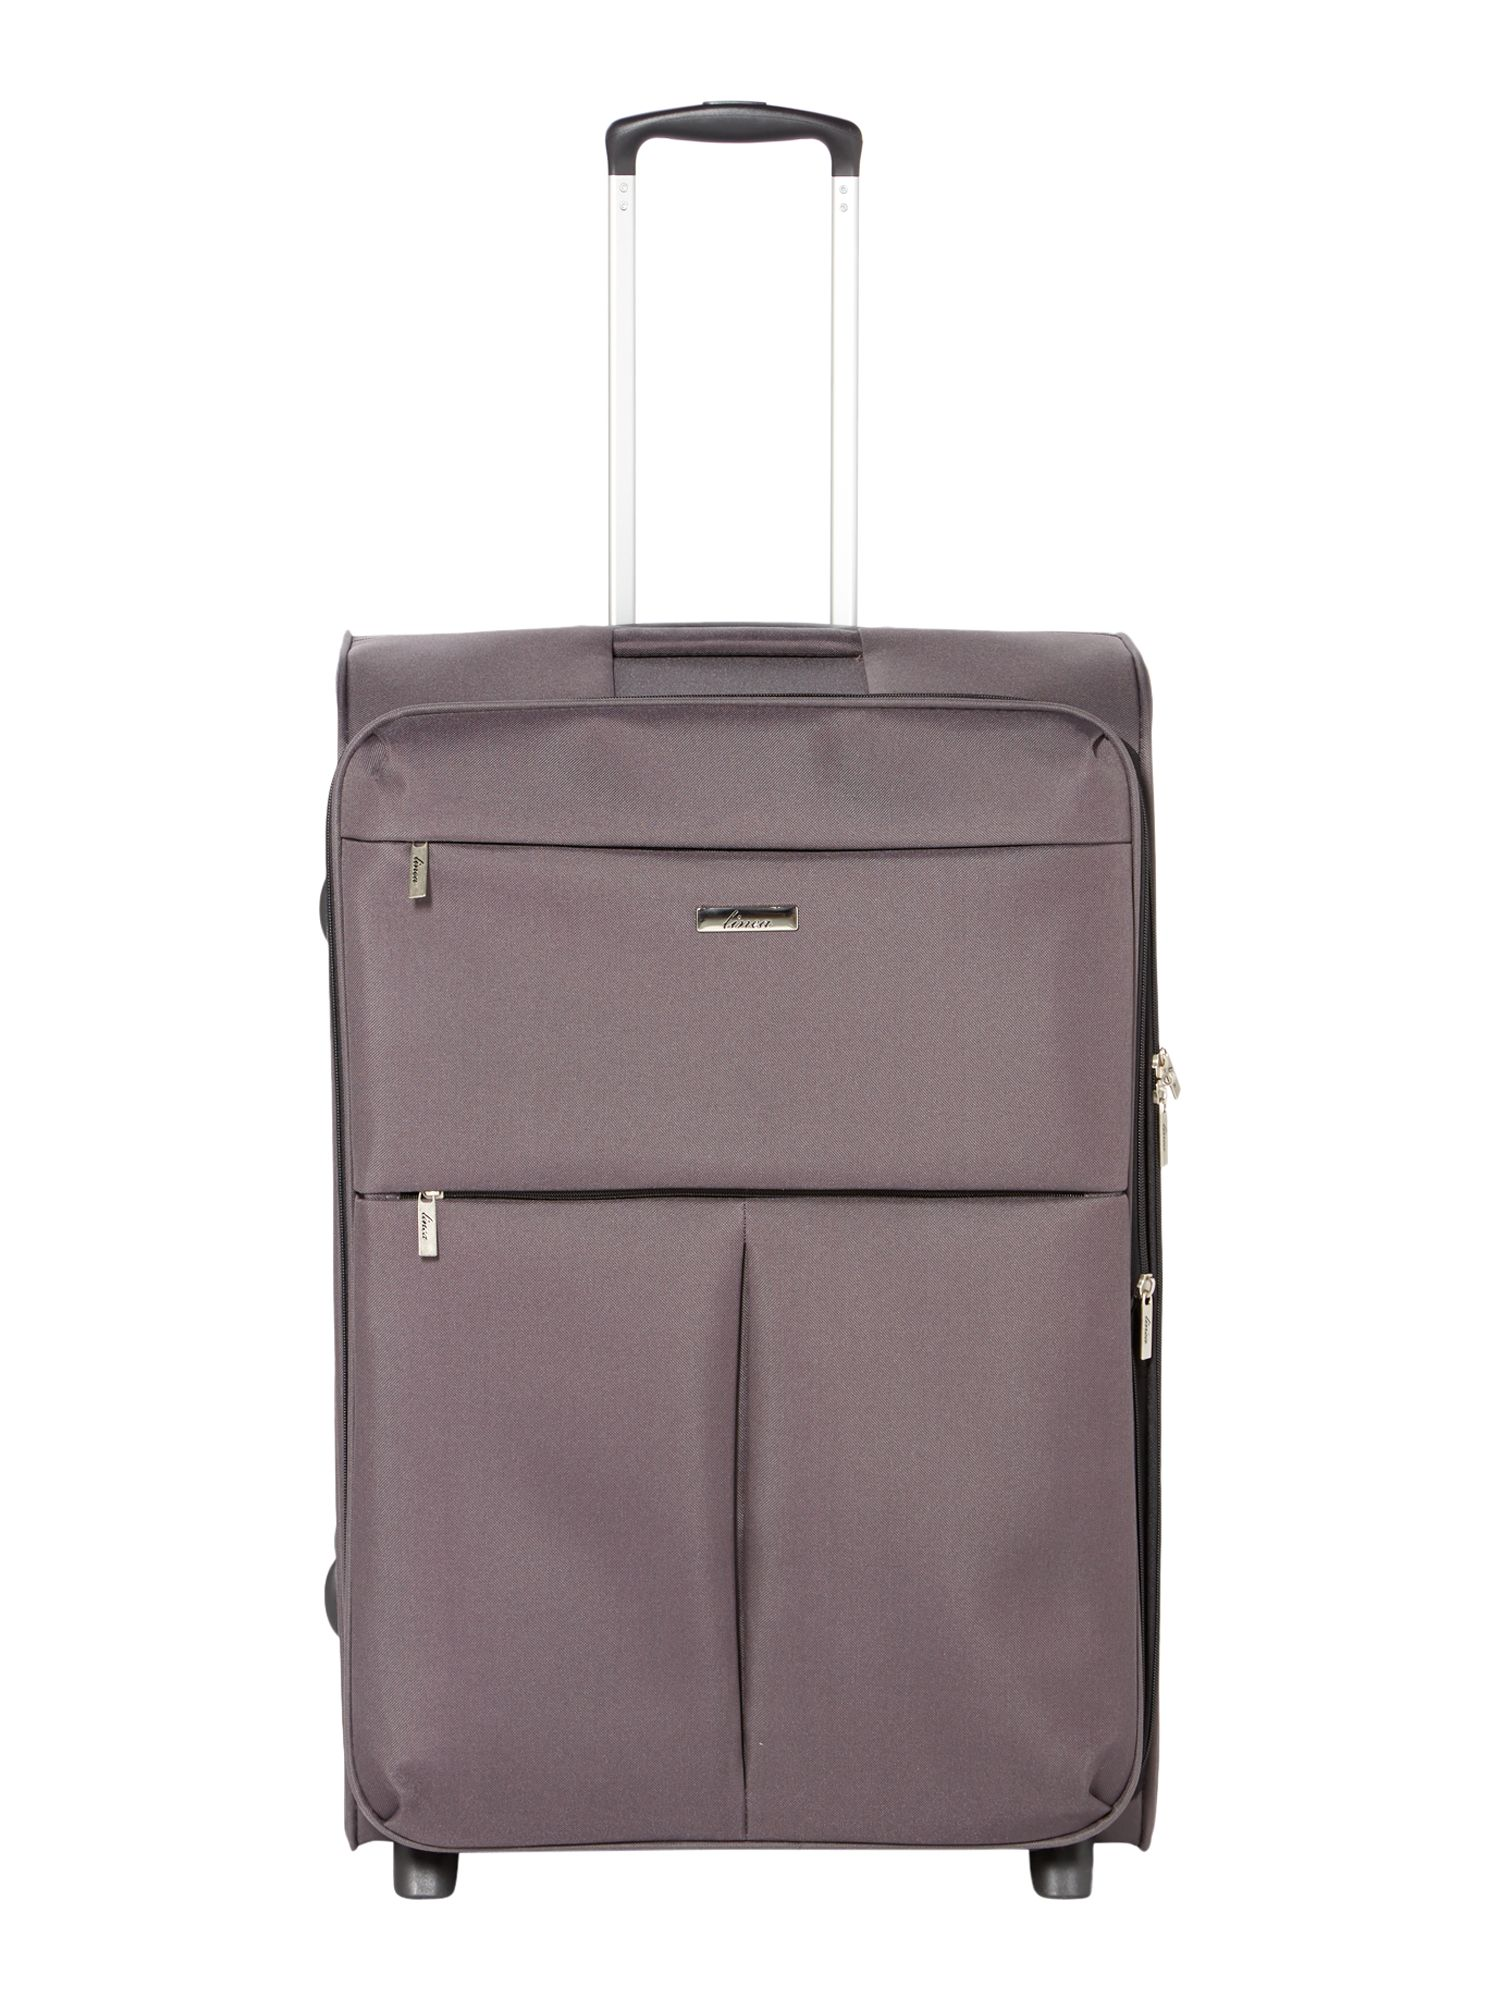 Linea Cambridge charcoal 2 wheel soft large suitcase Charcoal